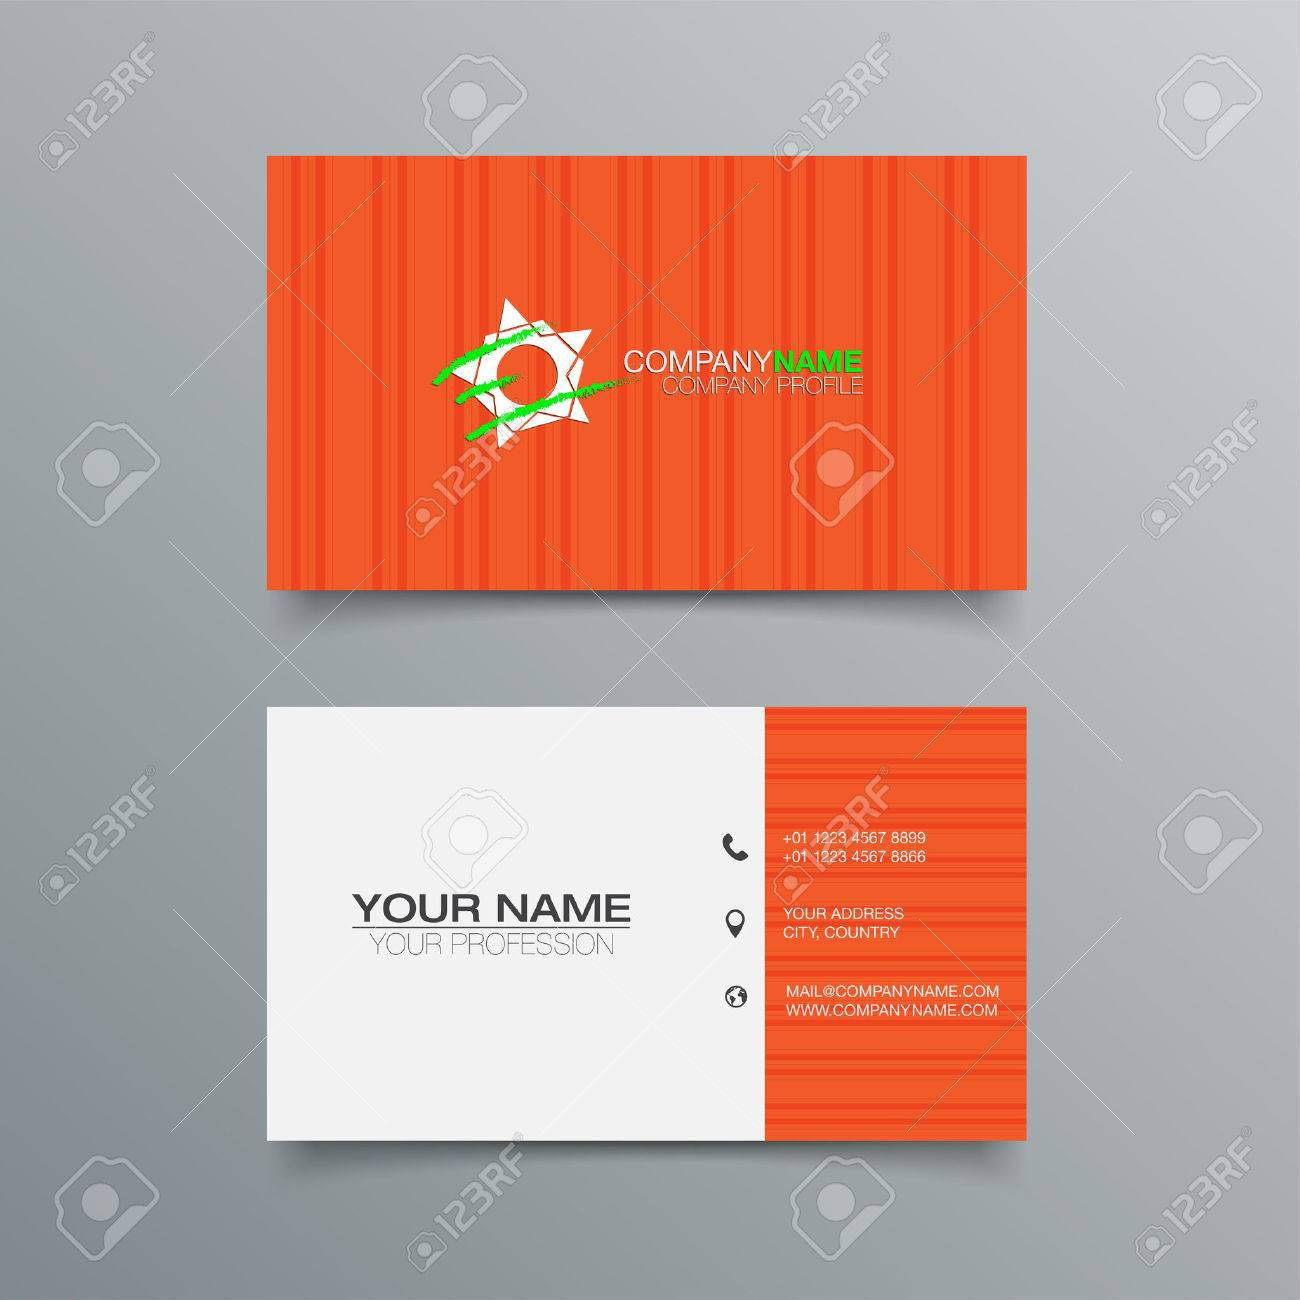 Business card background design template stock vector illustration business card background design template stock vector illustration stock vector 43837059 reheart Gallery